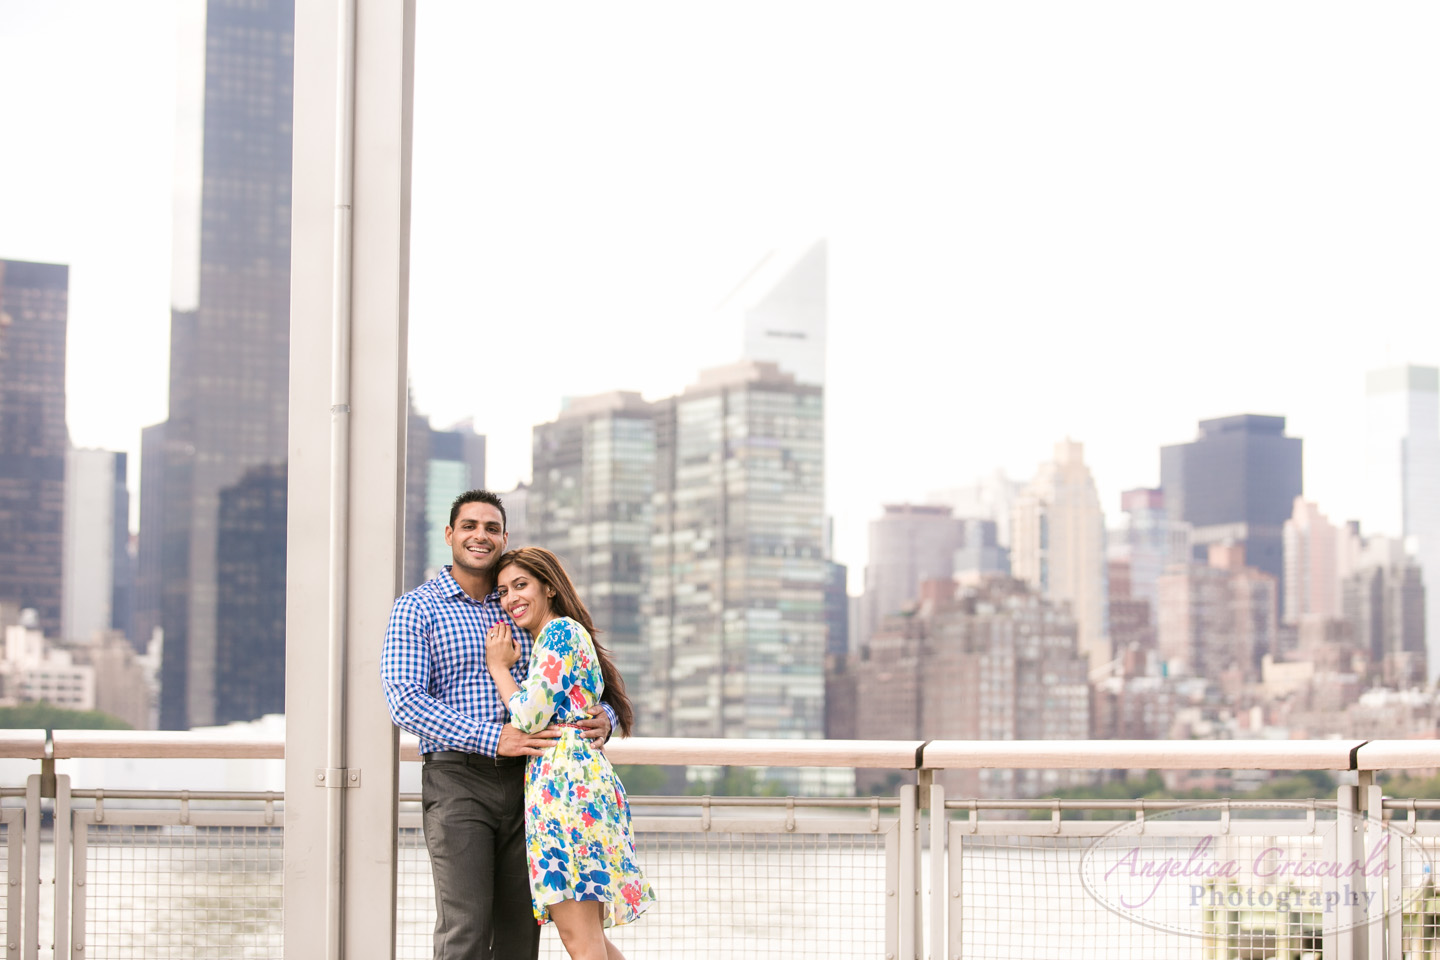 New_York_Engagement_Photography_LIC_Queens_Gantry_Hindu_WeddingW-33